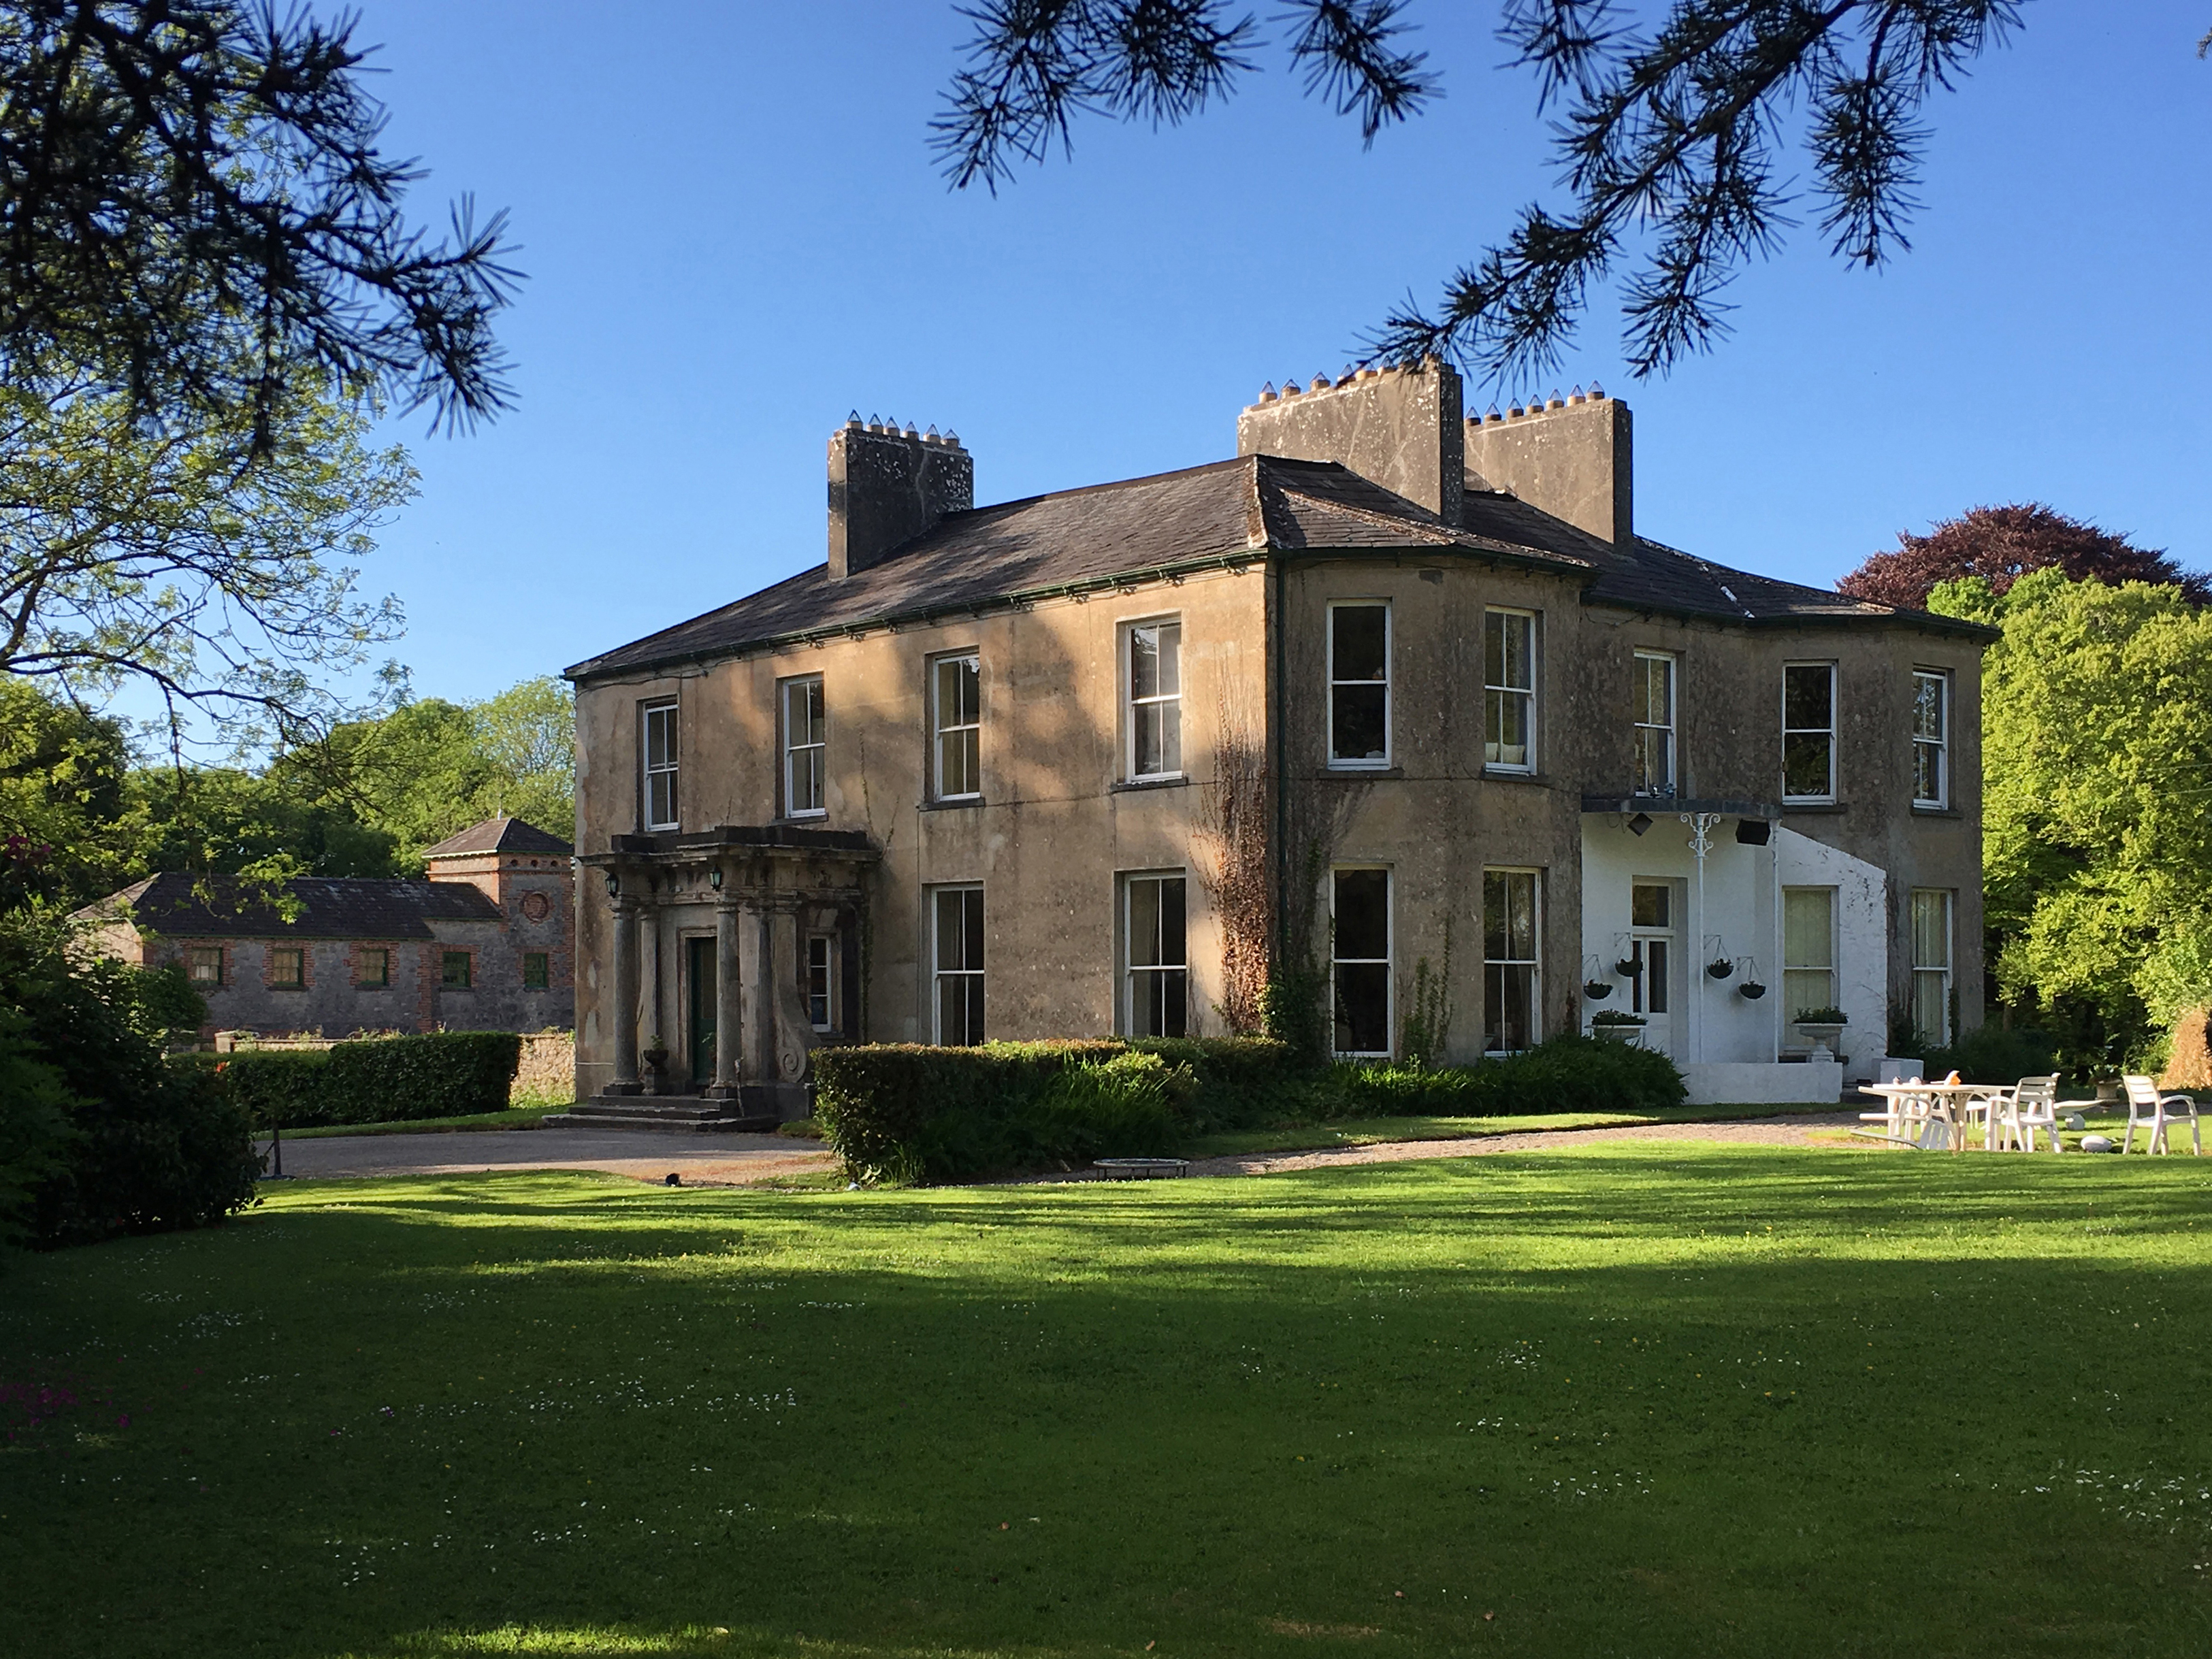 Thornfield House, Ahane, County Limerick, The Bourkes Family Home, St. John's Cemetery Project, Old Parramattans, Elizabeth Bourke, Governor Richard Bourke, Governor of New South Wales